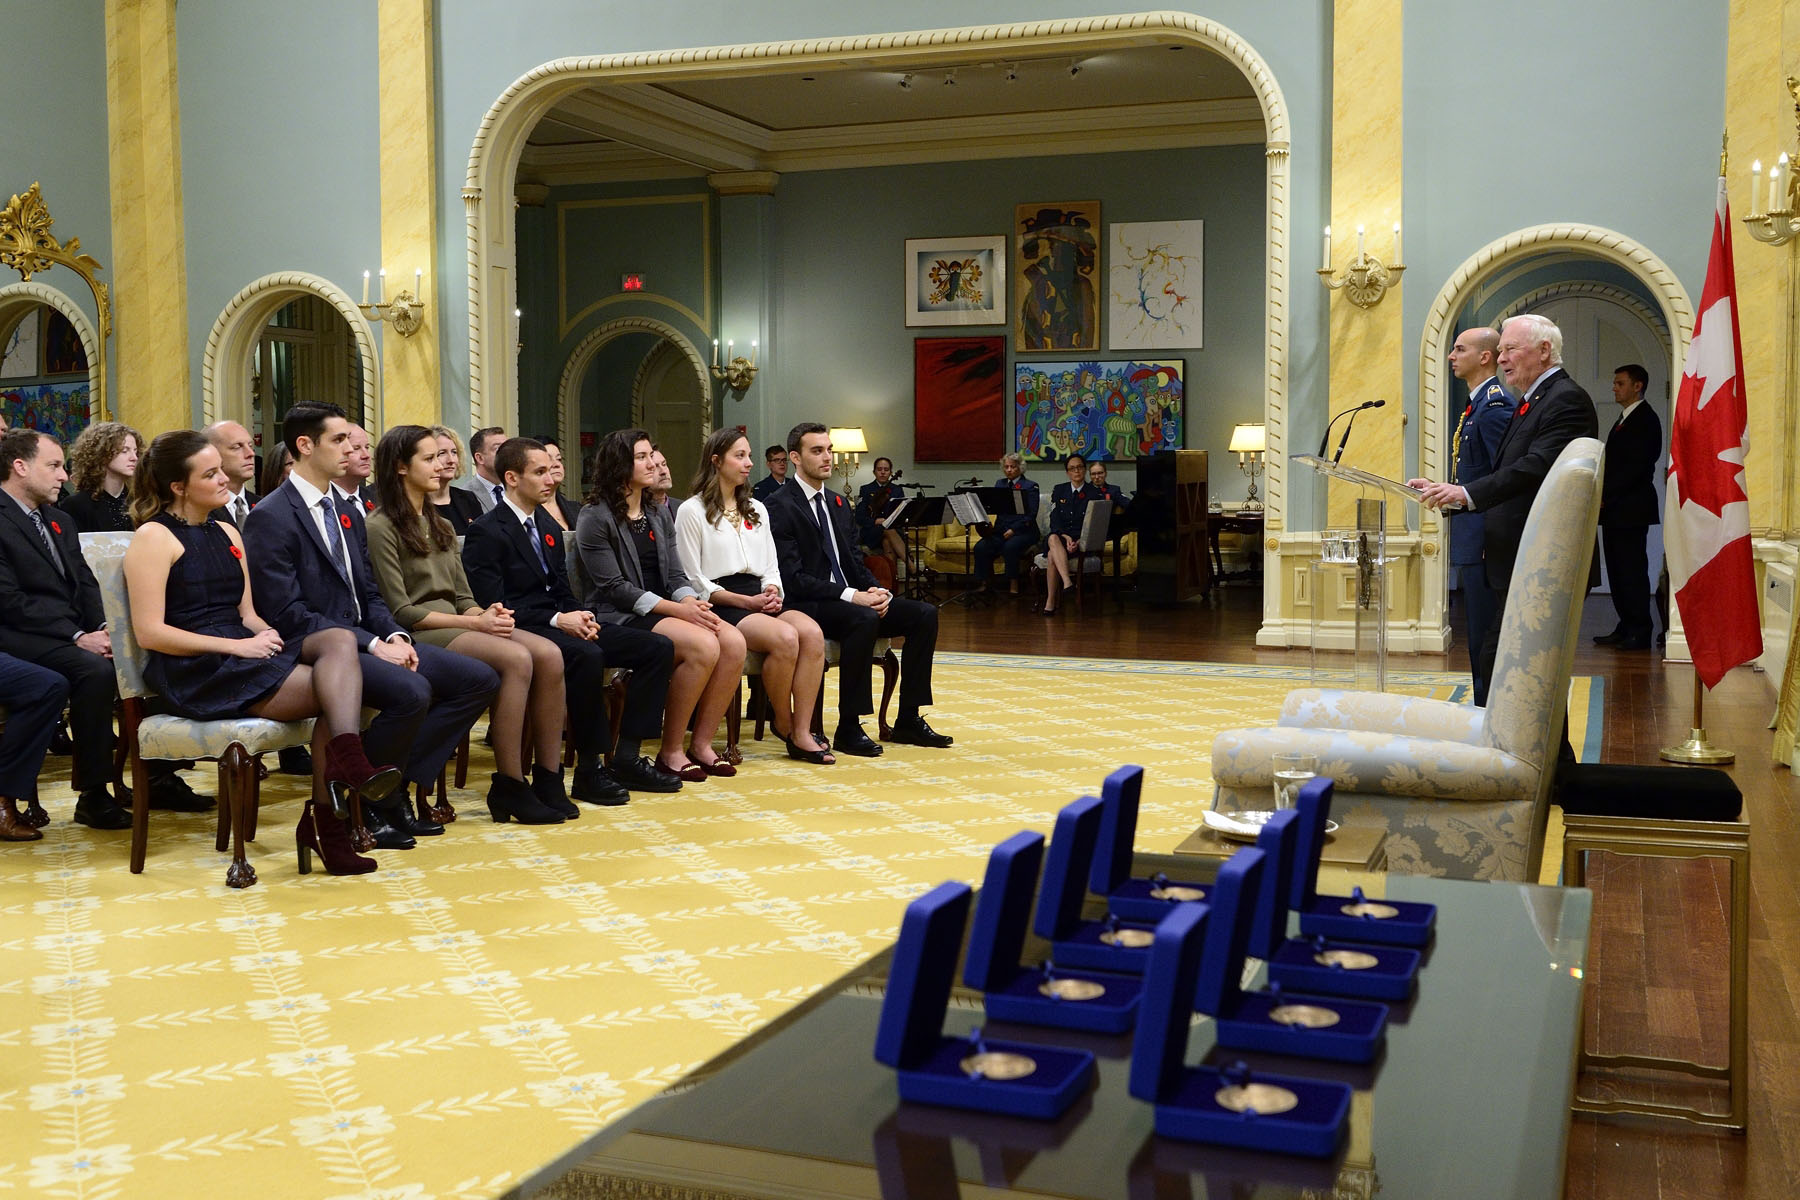 His Excellency presented the Governor General's Academic All-Canadian Commendation for the 2015-2016 season to eight recipients during a ceremony at Rideau Hall.